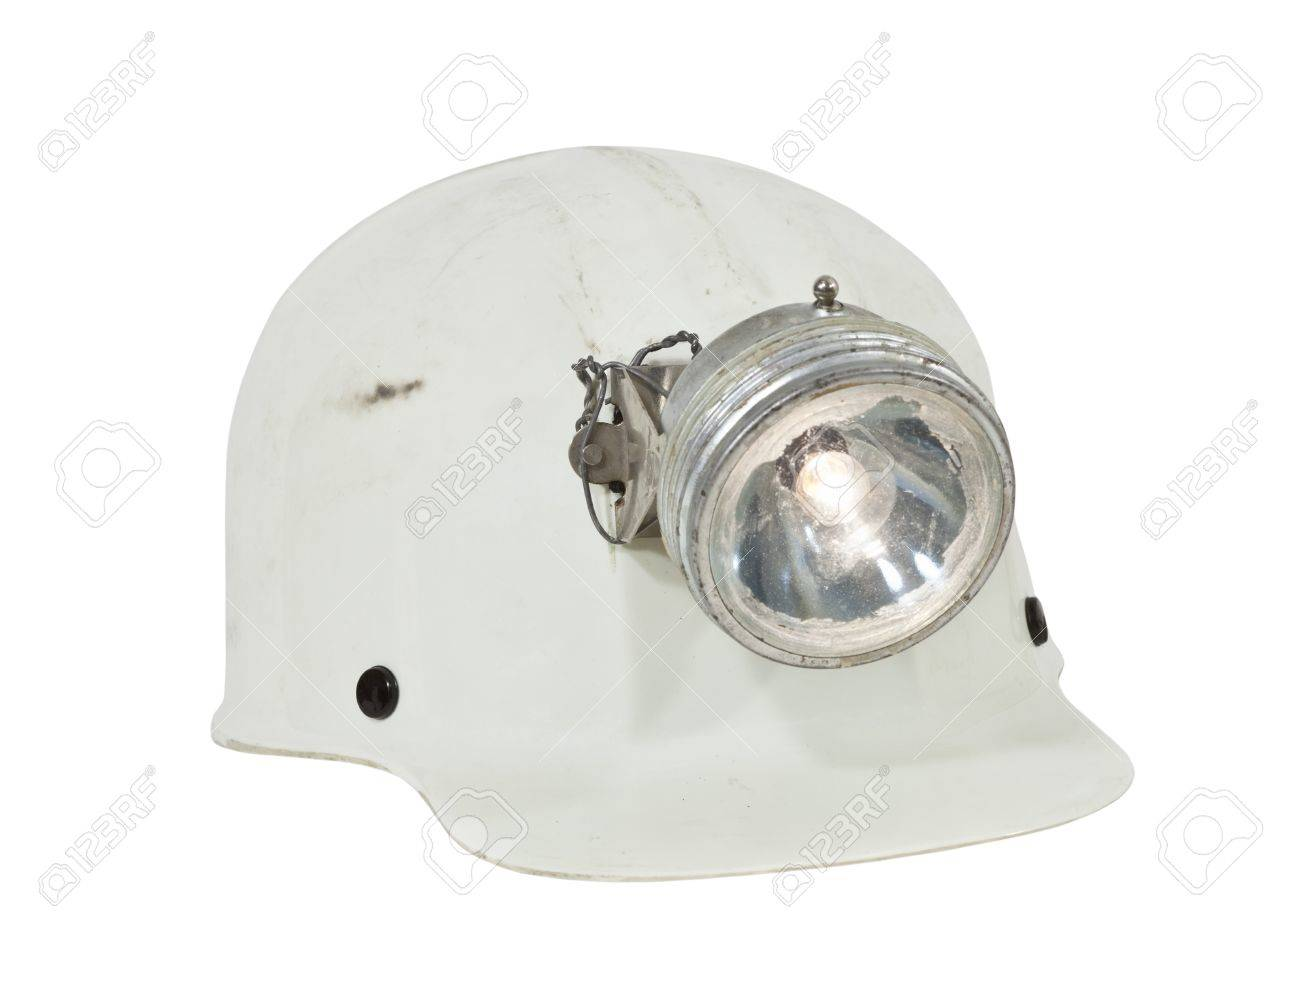 Vintage caving and mining hard hat with lamp Stock Photo - 14009199